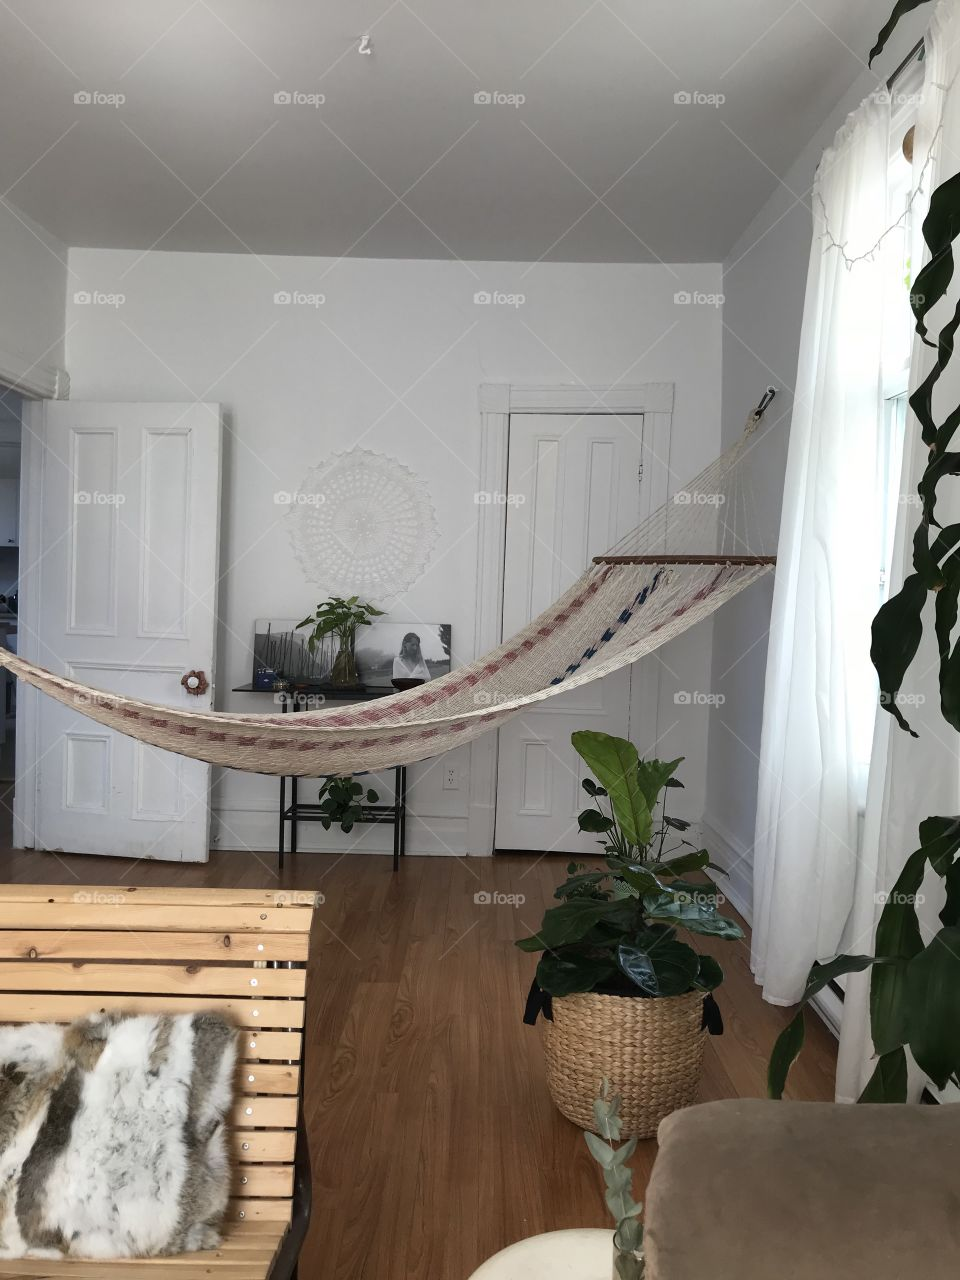 Comfy hamoc in a beautiful appartement with plants